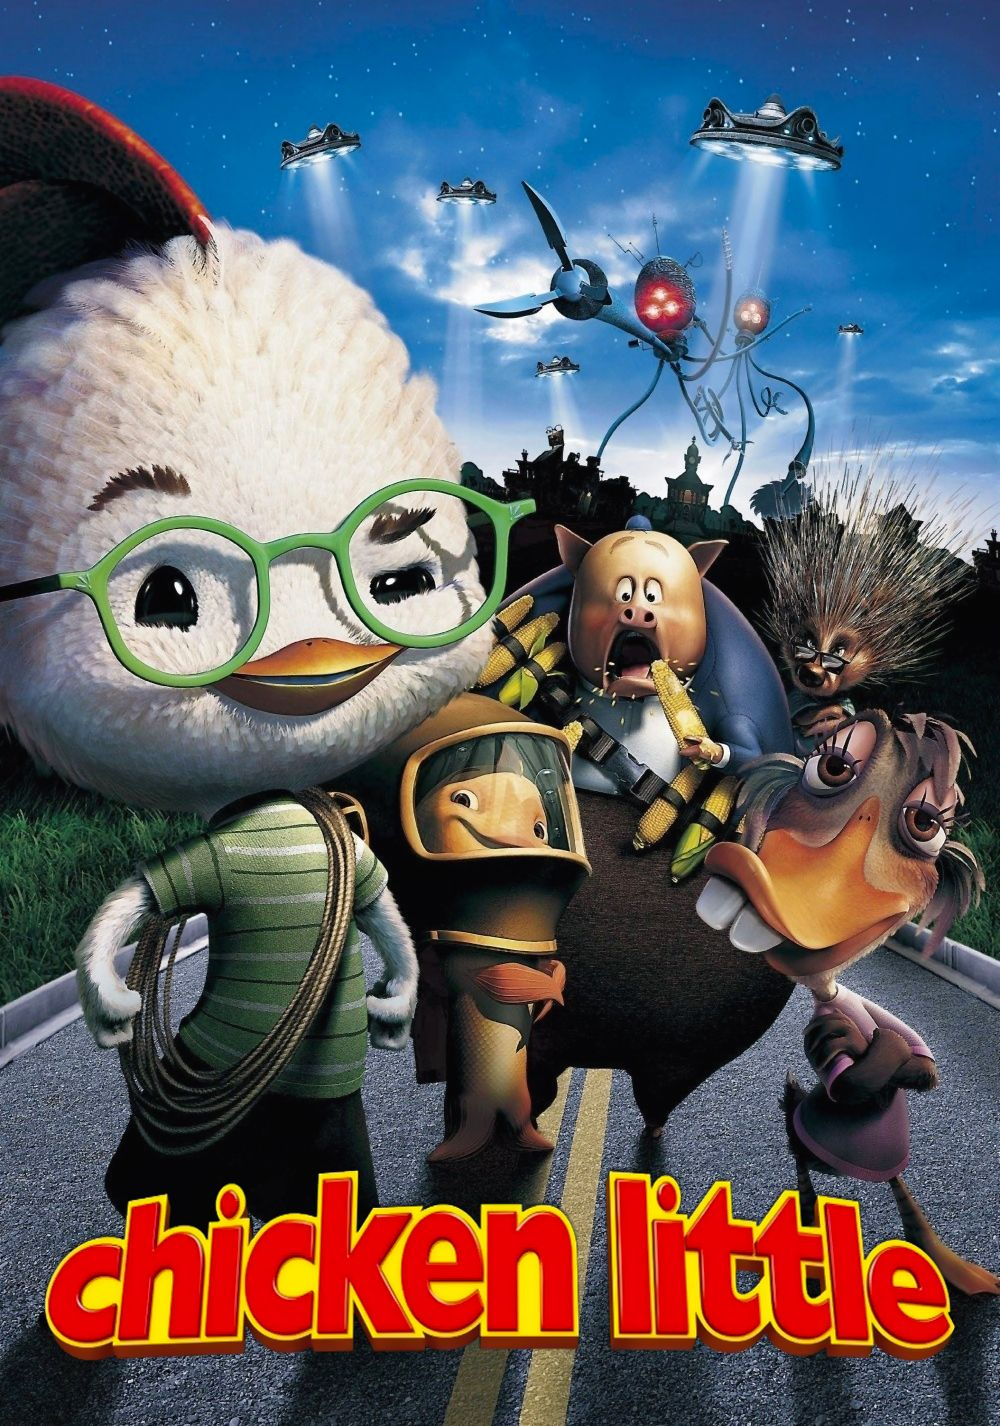 Chicken Little (2005) This time the sky really is